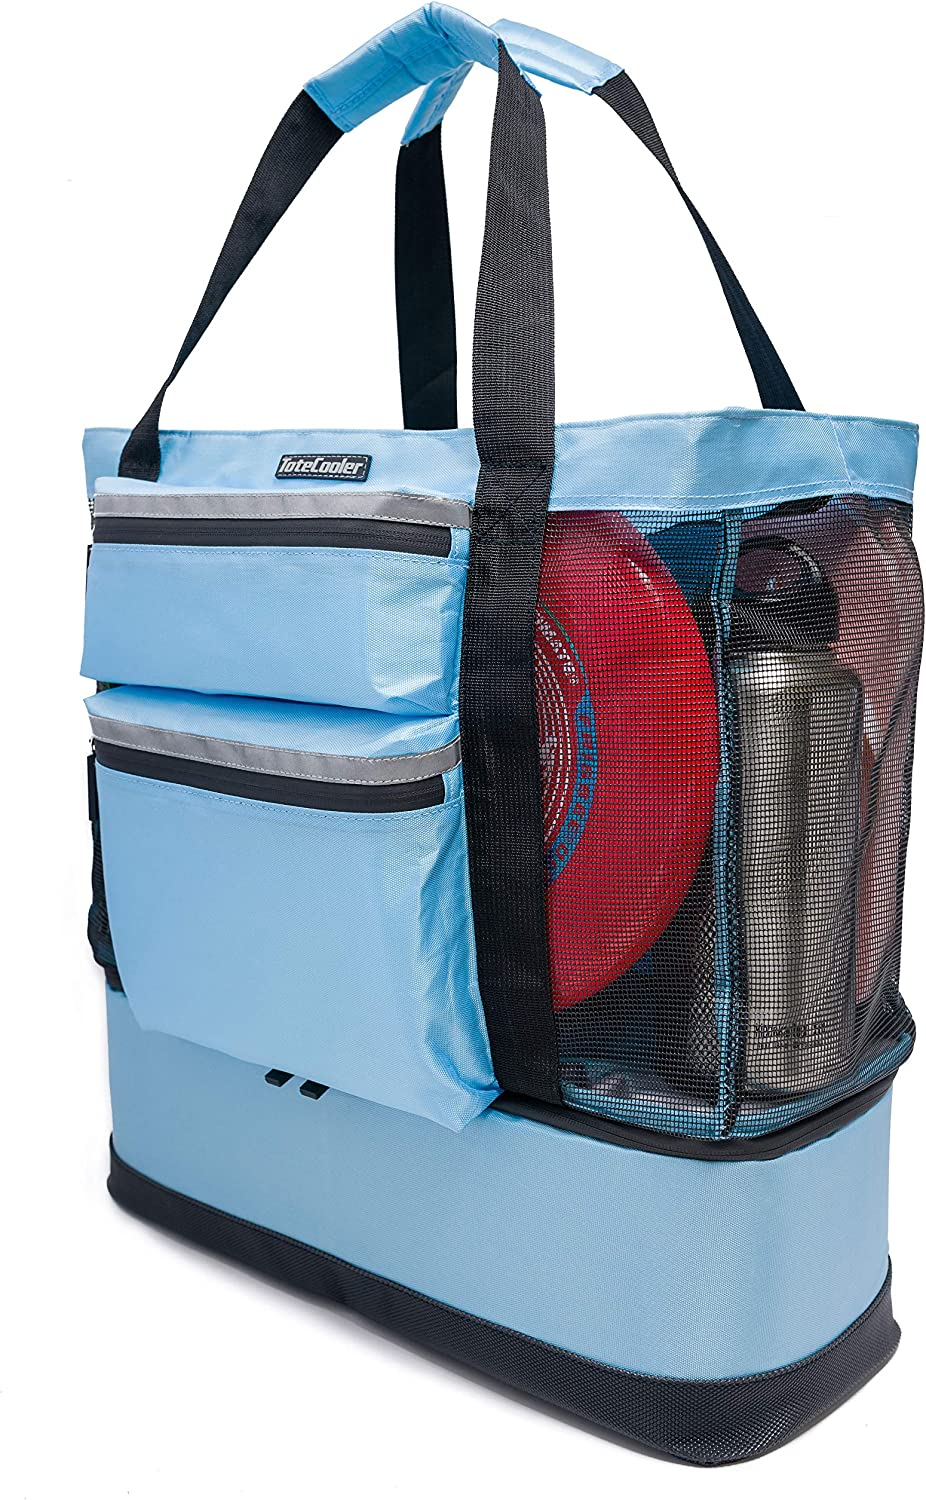 ToteCooler Beach Picnic Mesh Tote Bag with Zipper Top, Dual Internal Sling Bottle Pockets, 3 Exterior Pockets and Insulated Soft Cooler with Anti-Slip Rubber Base Guard